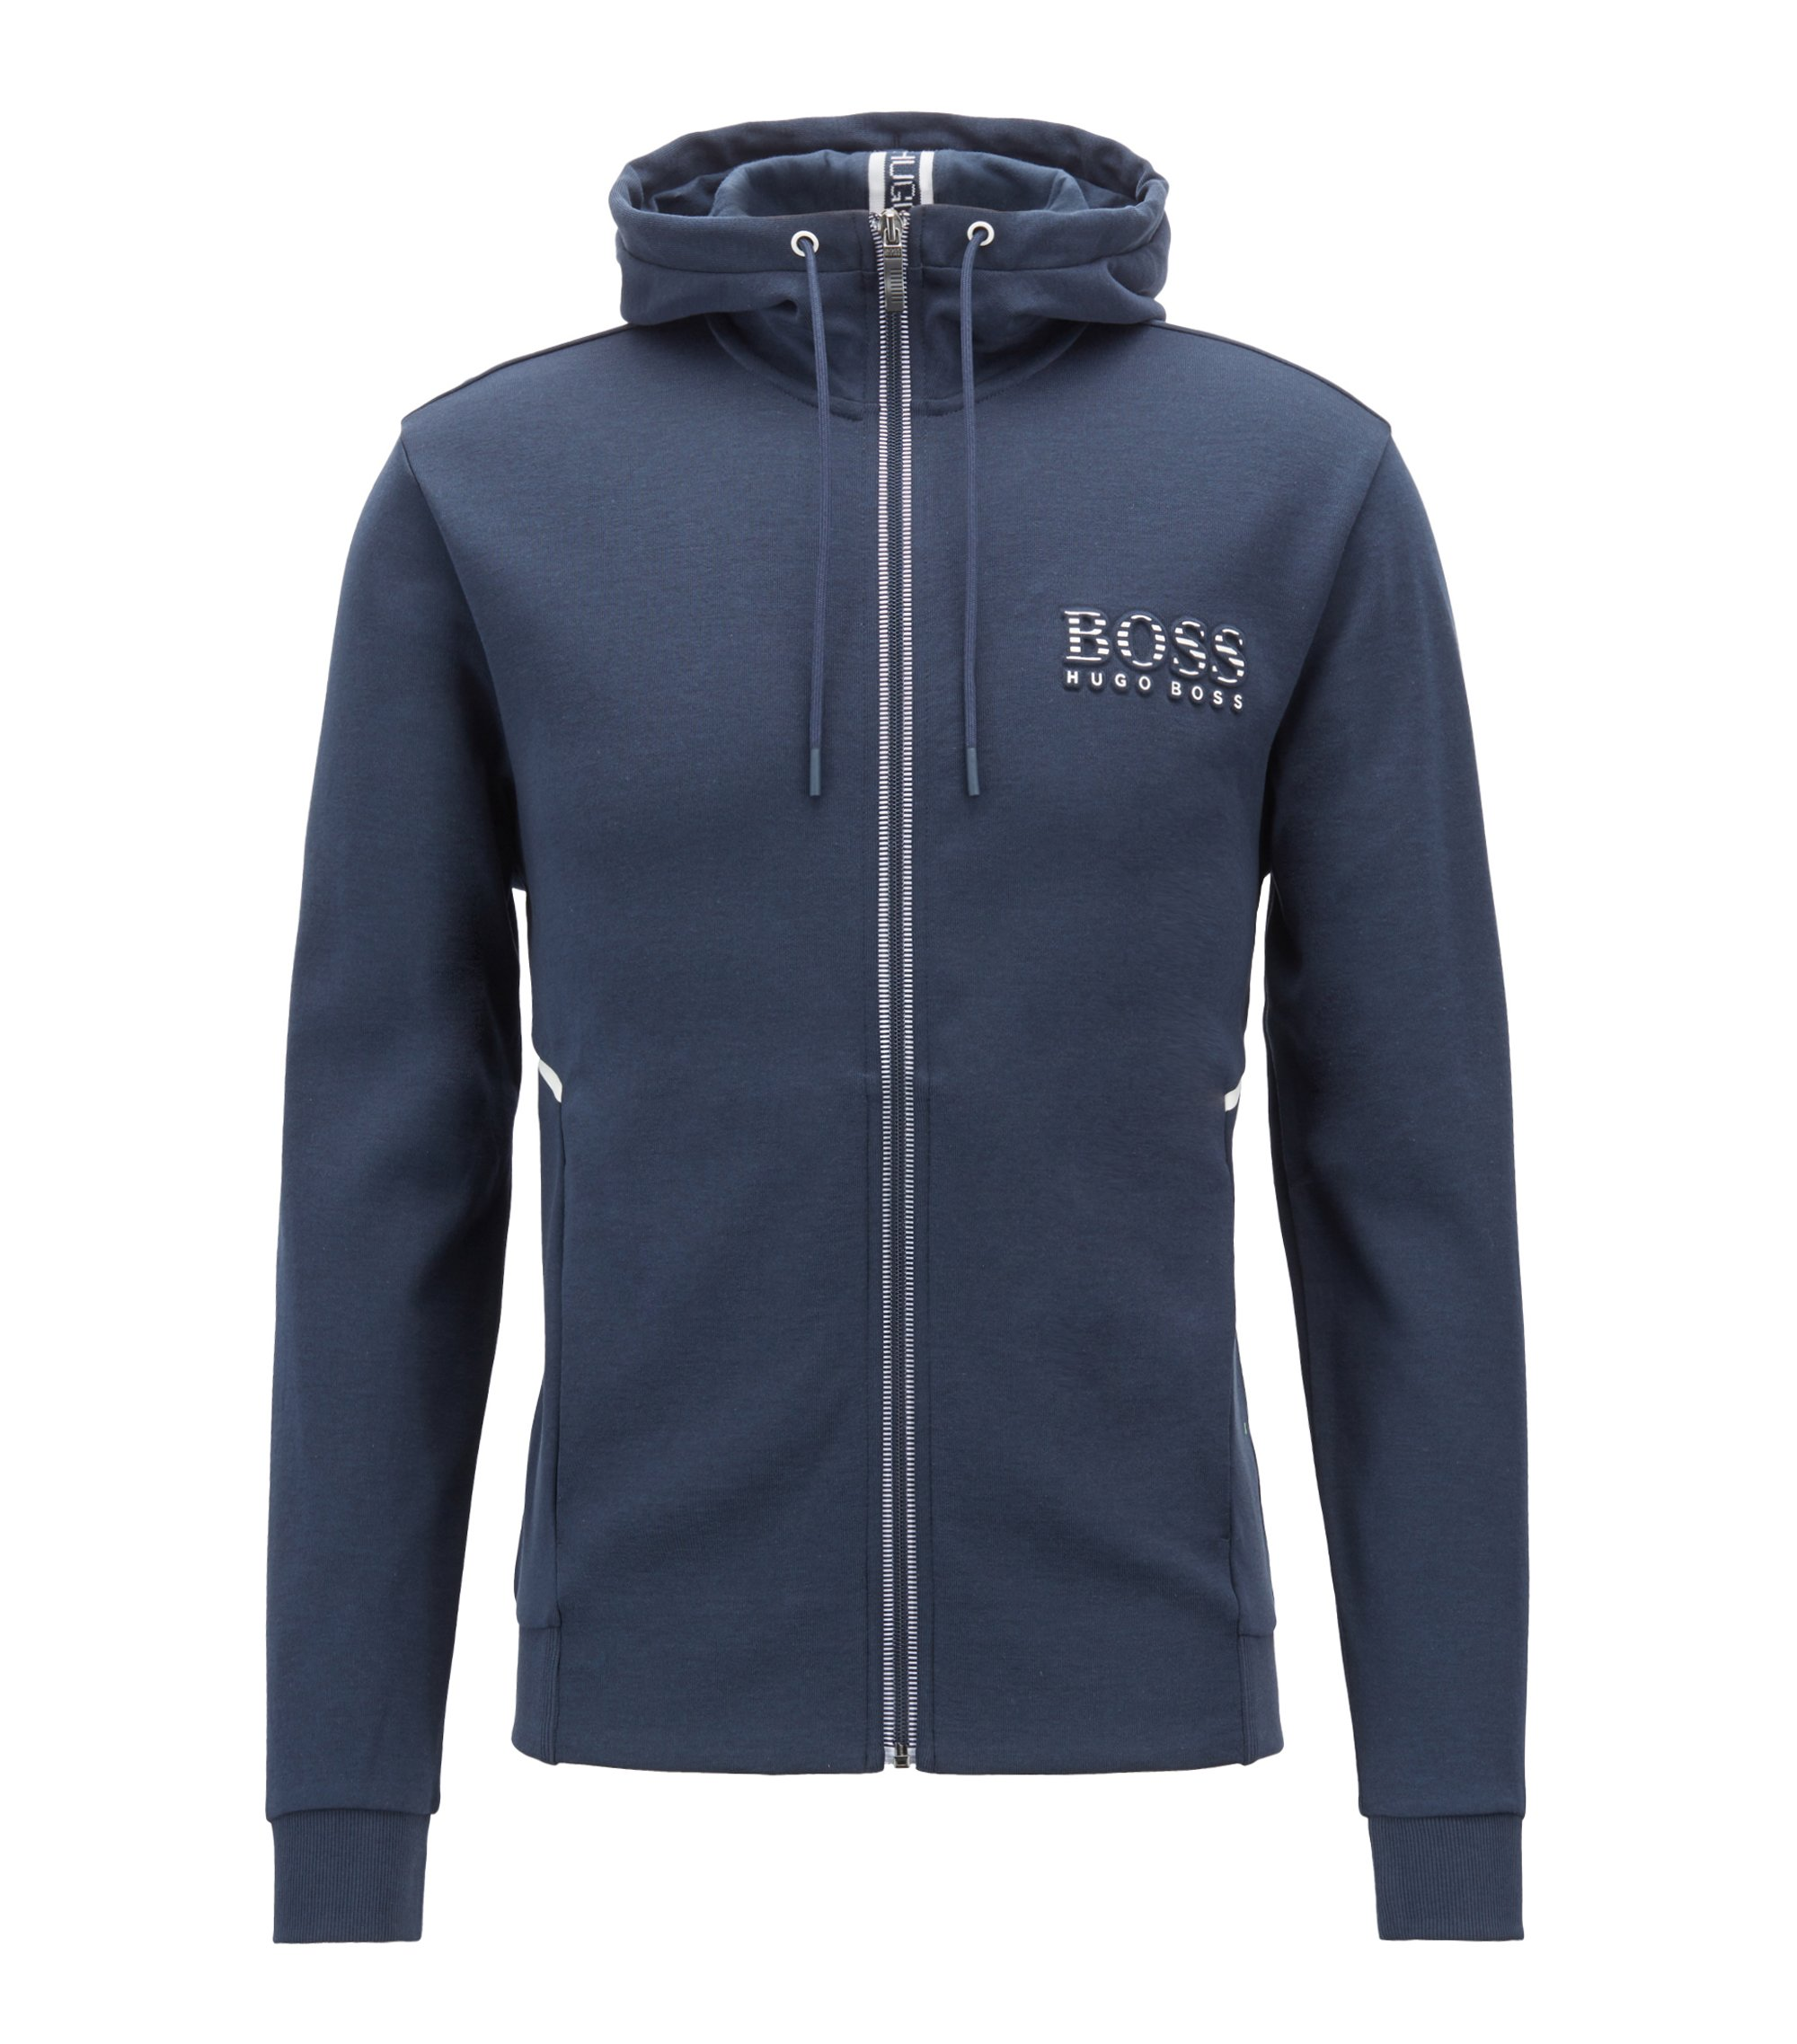 Hooded sweatshirt with logo and reflective detailing, Dark Blue